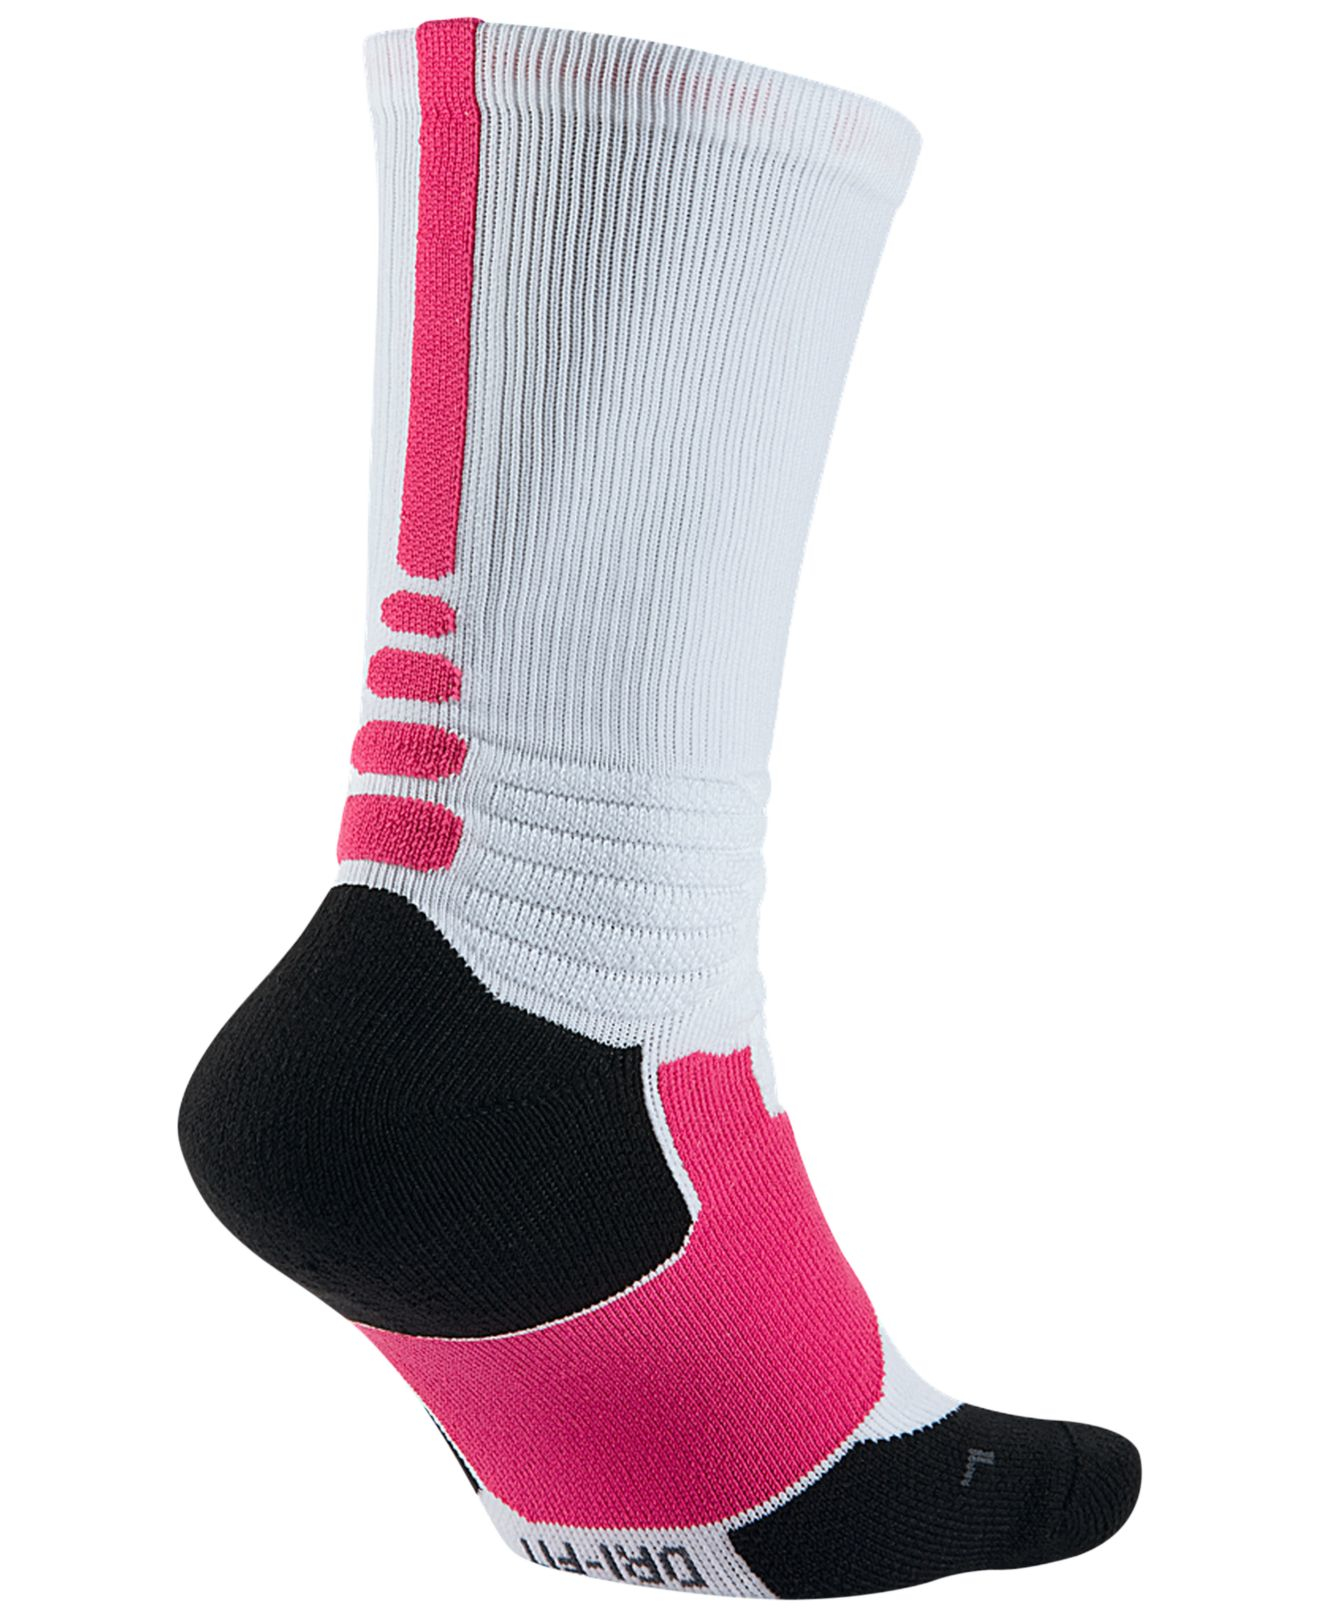 Nike Elite Basketball Crew Socks | Basketball Scores